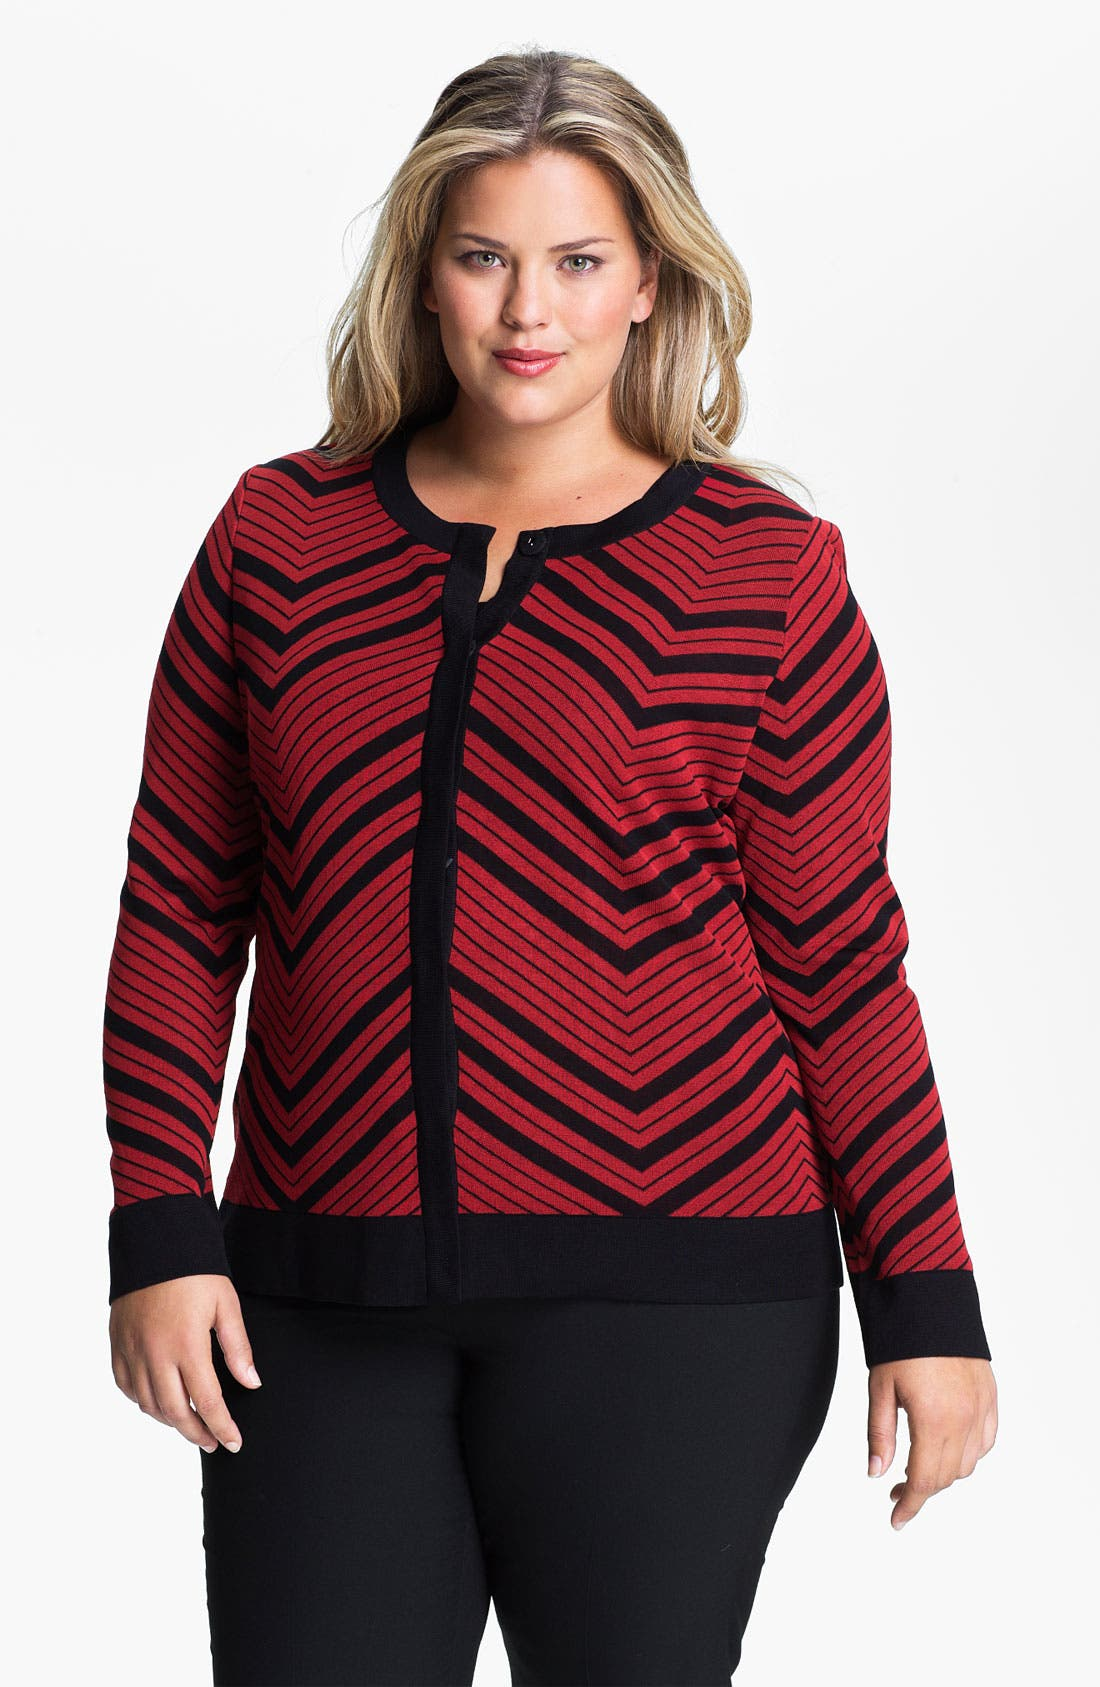 Main Image - Exclusively Misook Jewel Neck Herringbone Pattern Jacket (Plus)